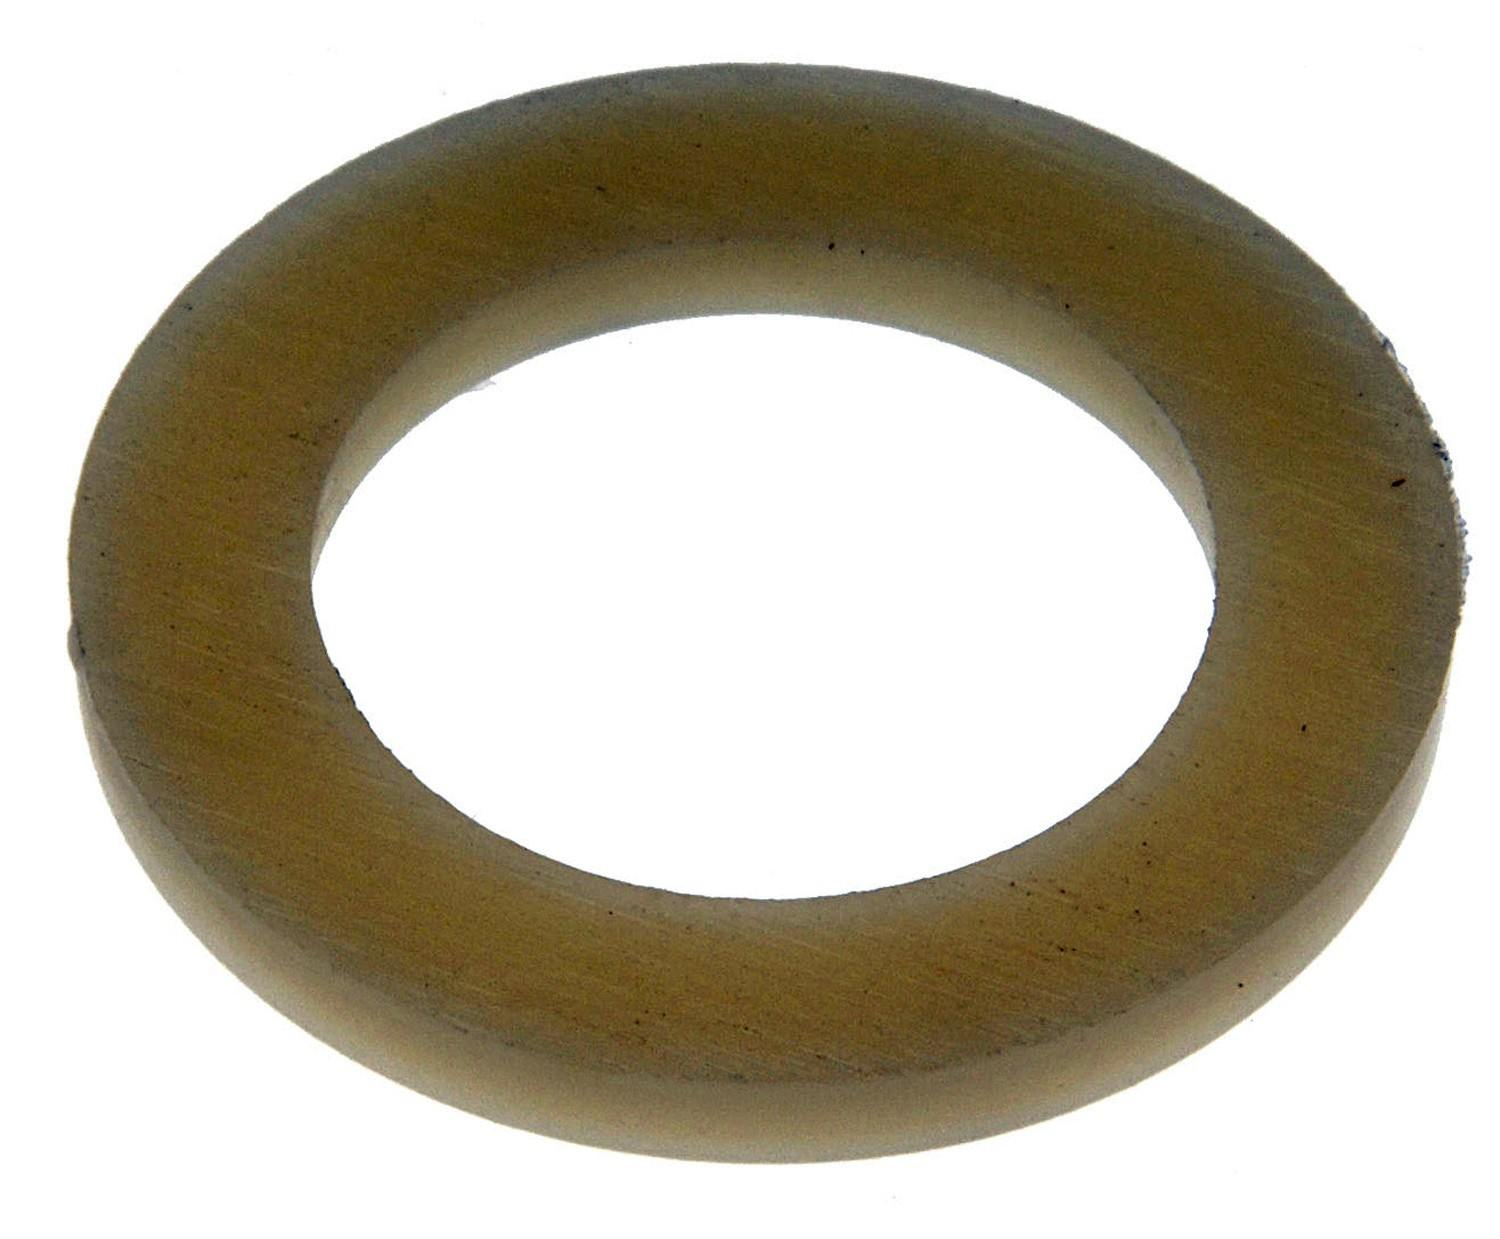 DORMAN - AUTOGRADE - Engine Oil Drain Plug Gasket - DOC 097-002.1